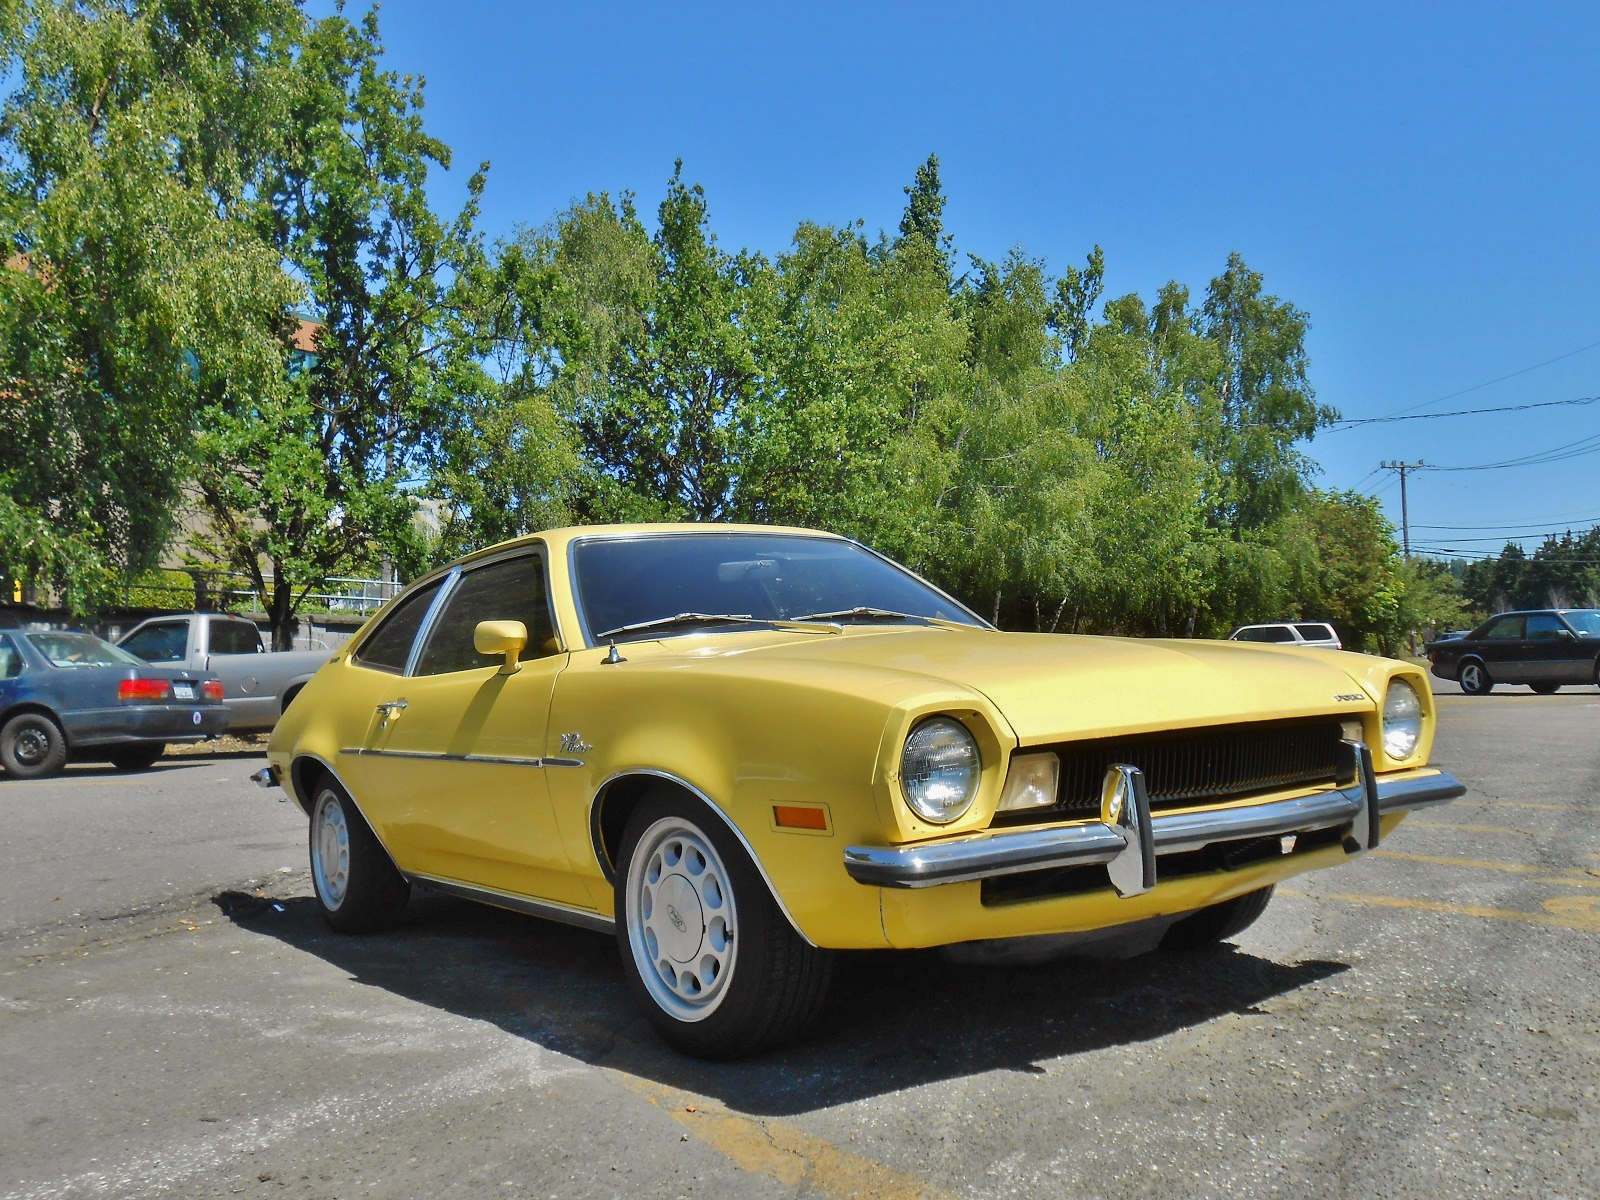 Seattle's Parked Cars: 1972 Ford Pinto Runabout